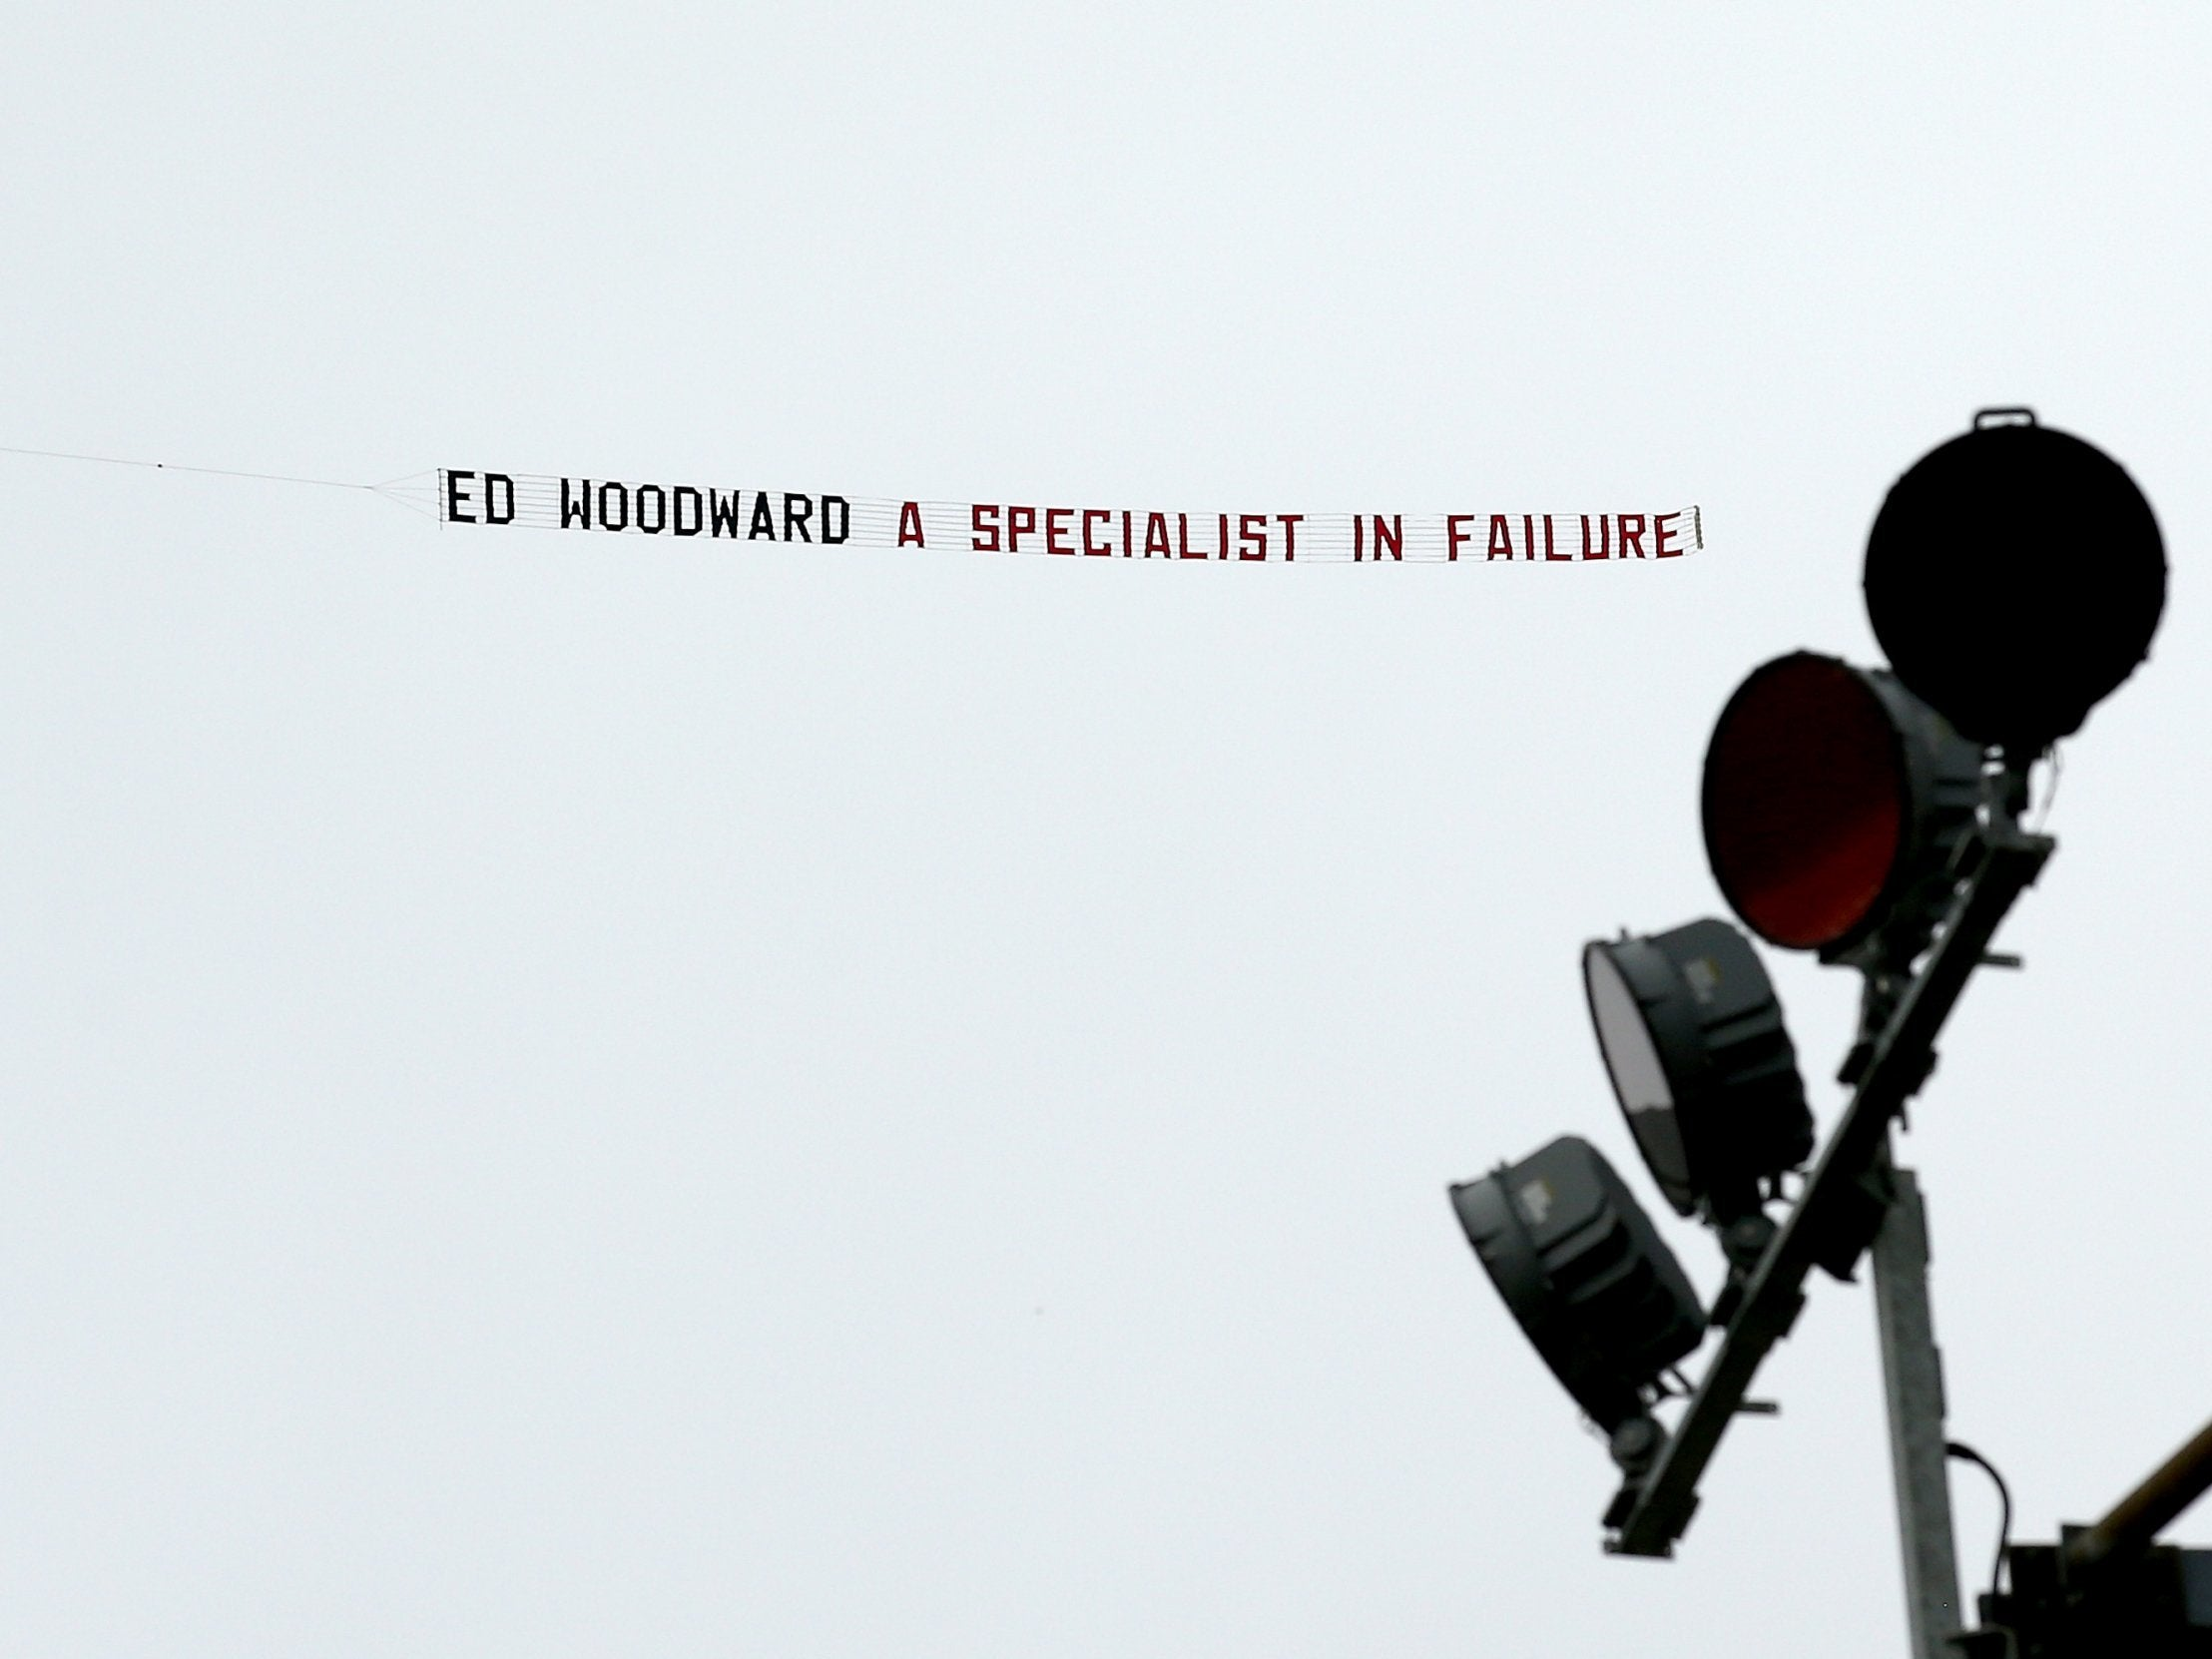 manchester united fans fly ed woodward banner over burnley match